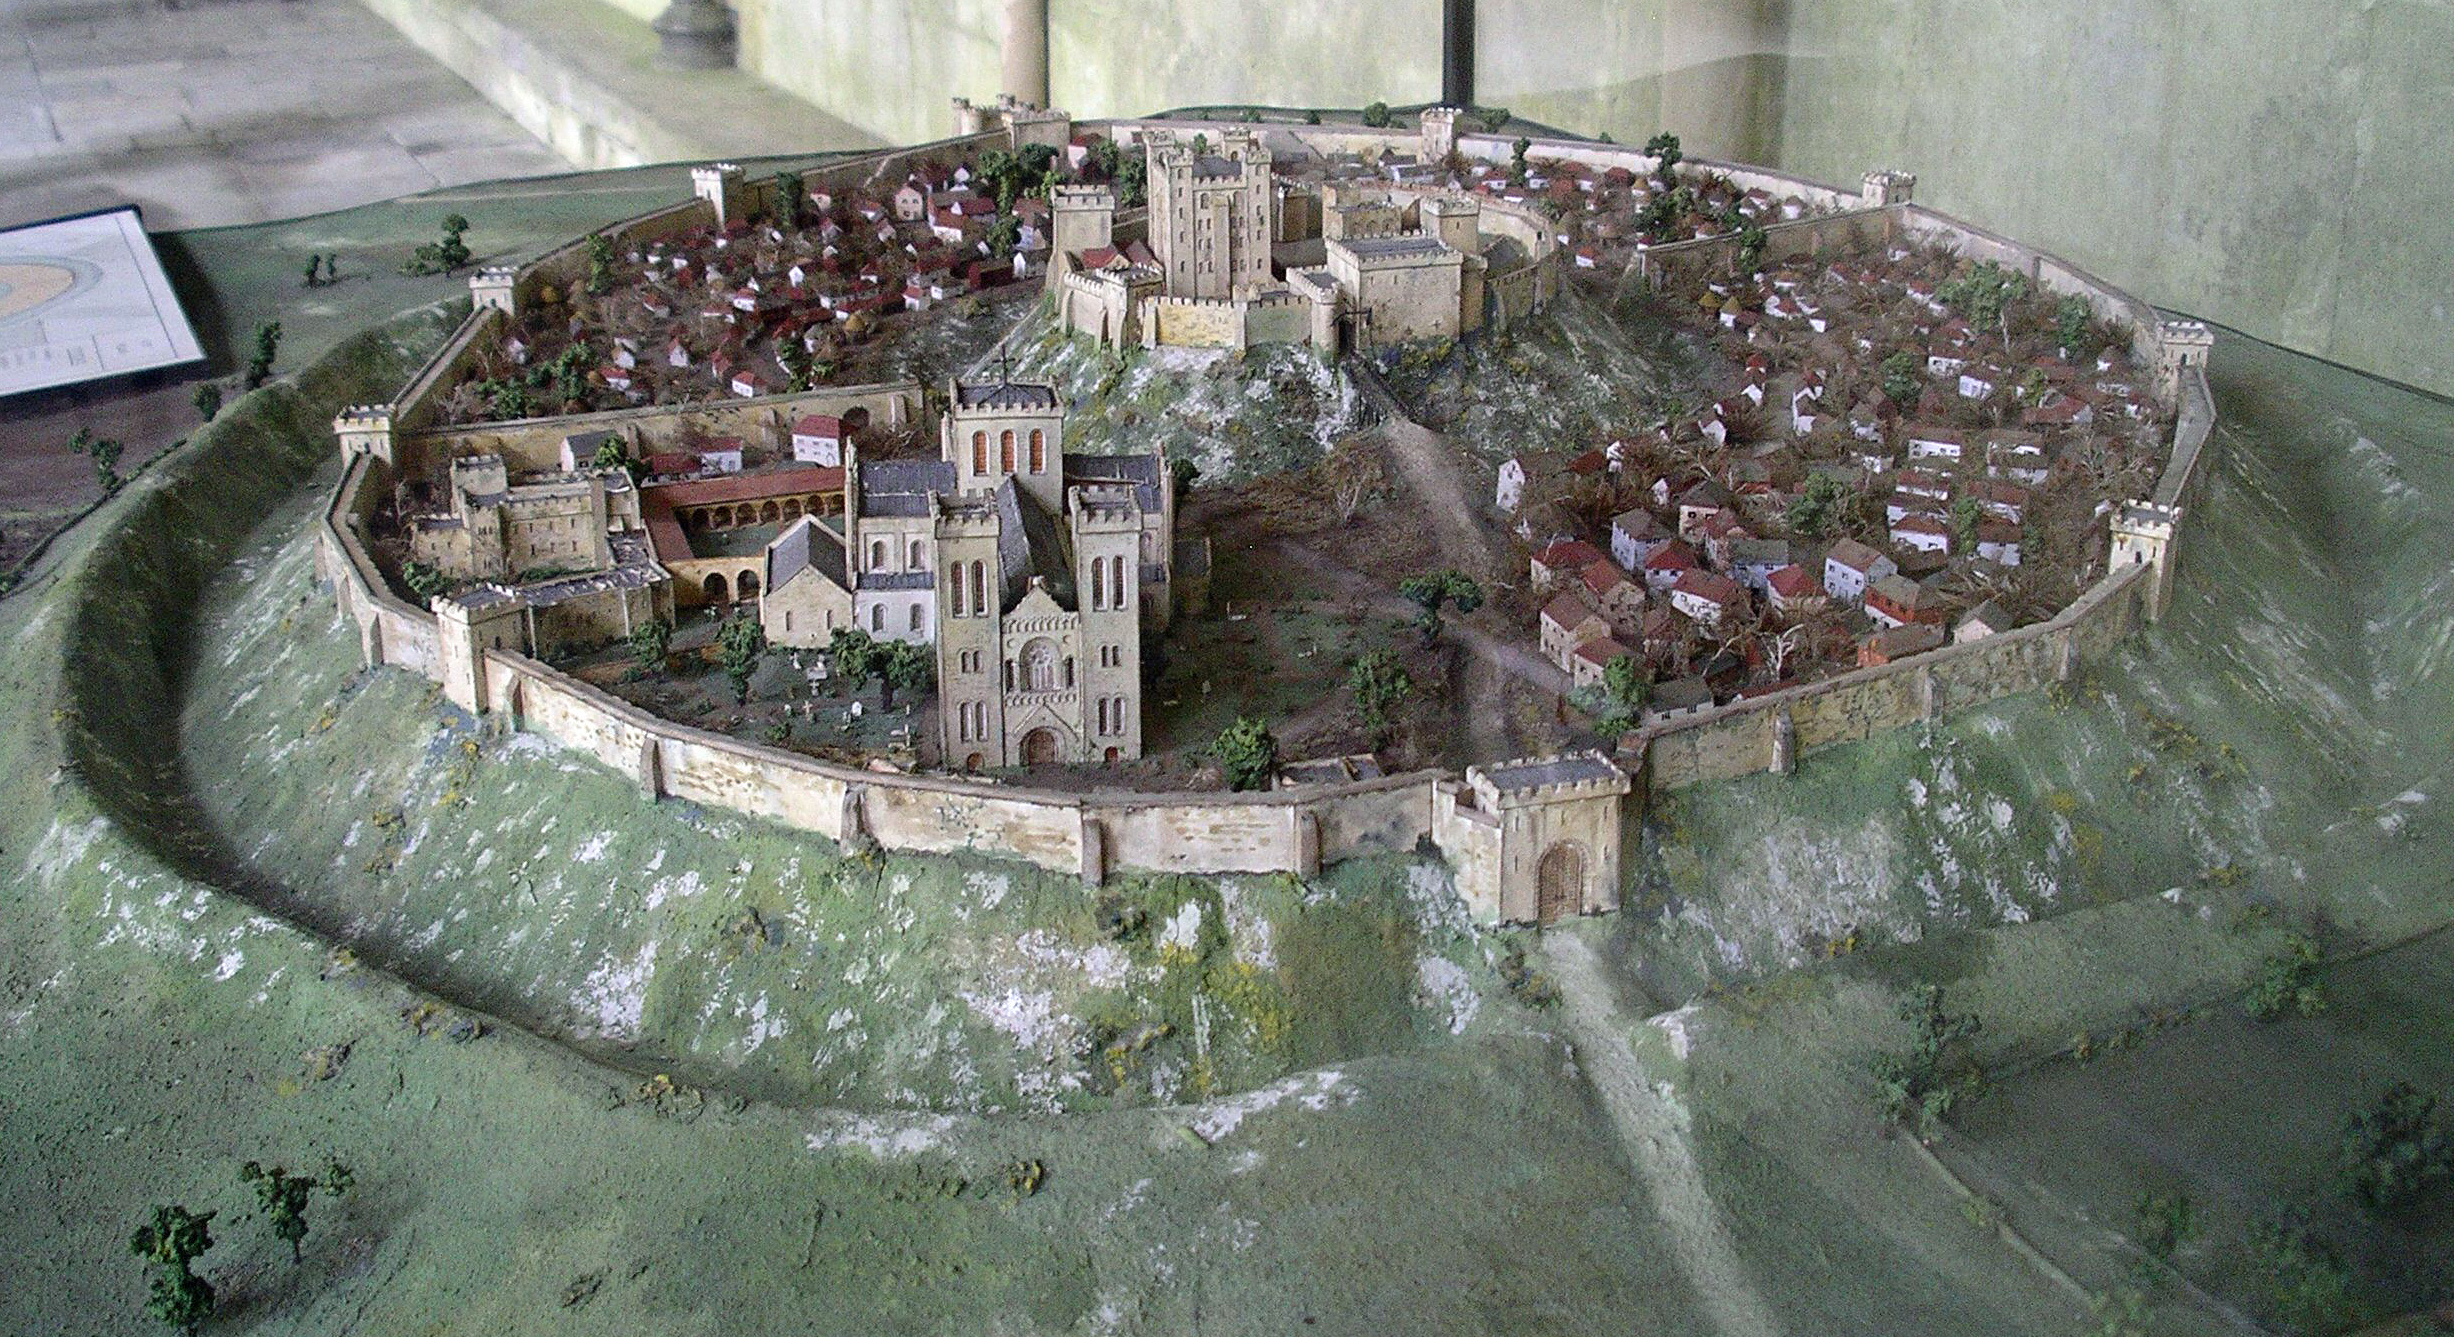 Anglie Old Sarum, model